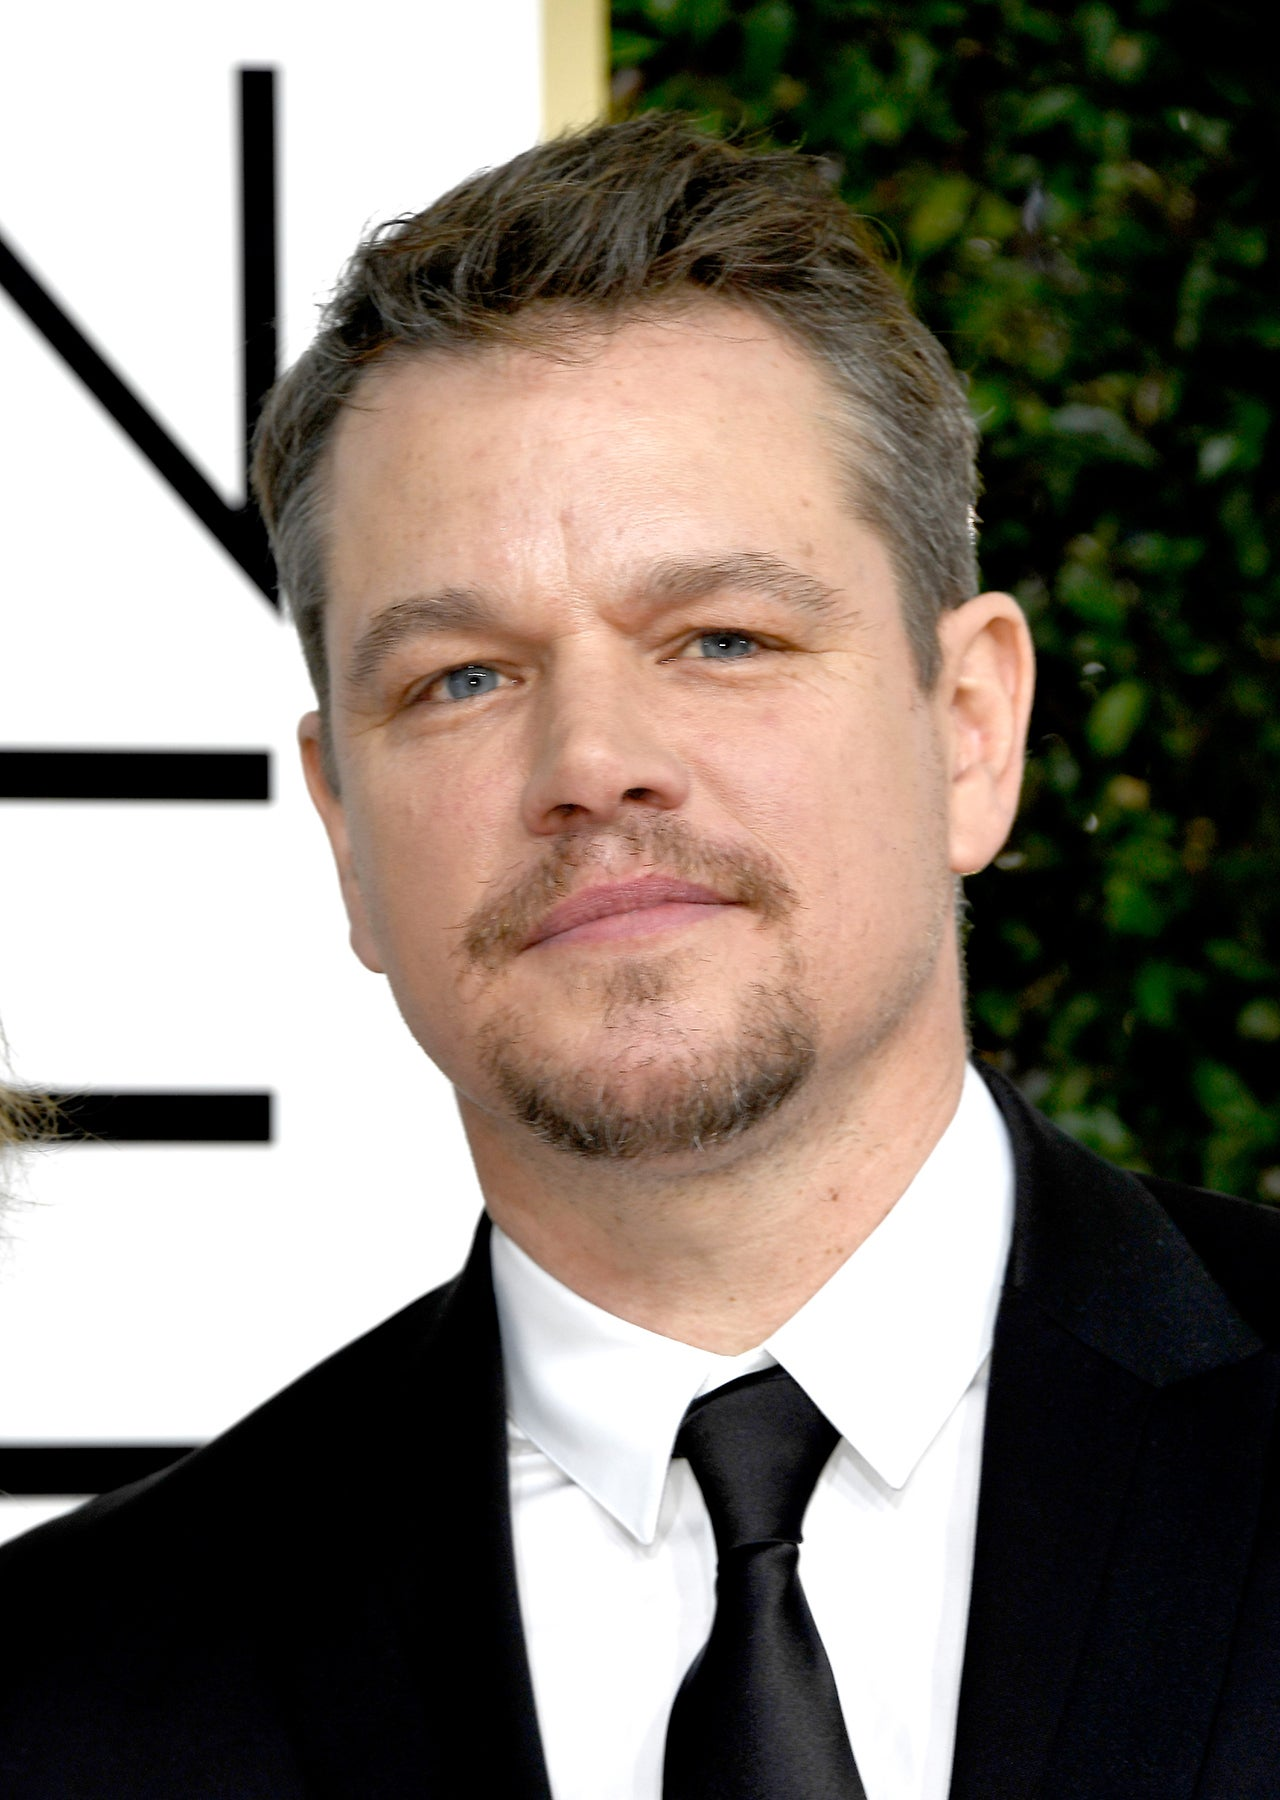 Matt Damon Talks Times Up I Should Get In The Back Seat And Close My Mouth For A While Entertainment Tonight